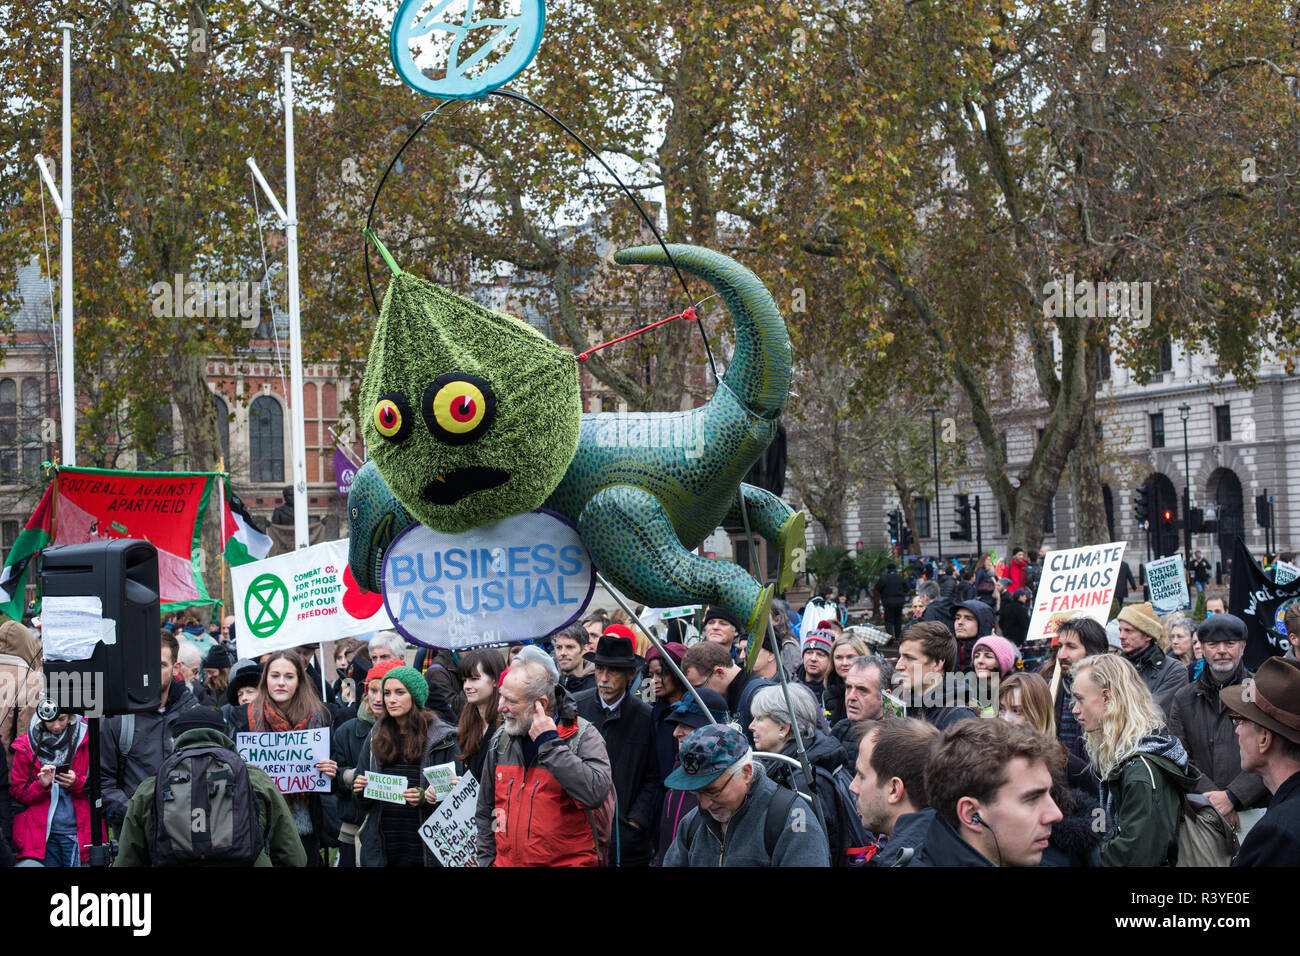 London, UK. 24th November, 2018. Environmental campaigners from Extinction Rebellion attend a Rebellion Day 2 event to highlight 'criminal inaction in the face of climate change catastrophe and ecological collapse' by the UK Government as part of a programme of civil disobedience during which scores of campaigners have been arrested. The event comprised a funeral ceremony in Parliament Square followed by a procession to Downing Street and Buckingham Palace. Credit: Mark Kerrison/Alamy Live News - Stock Image